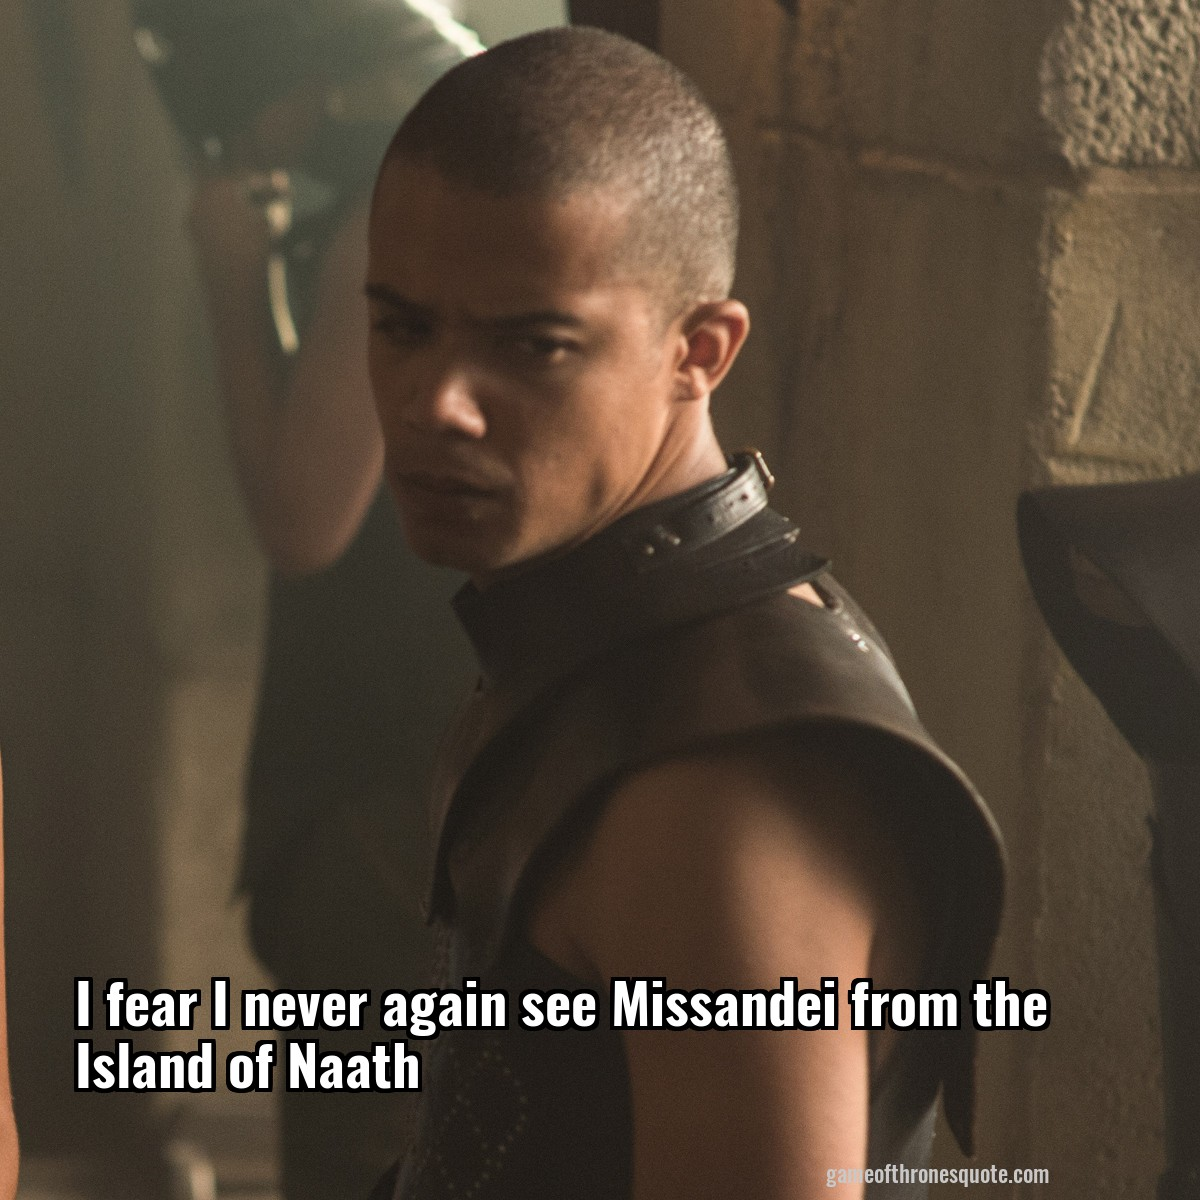 I fear I never again see Missandei from the Island of Naath